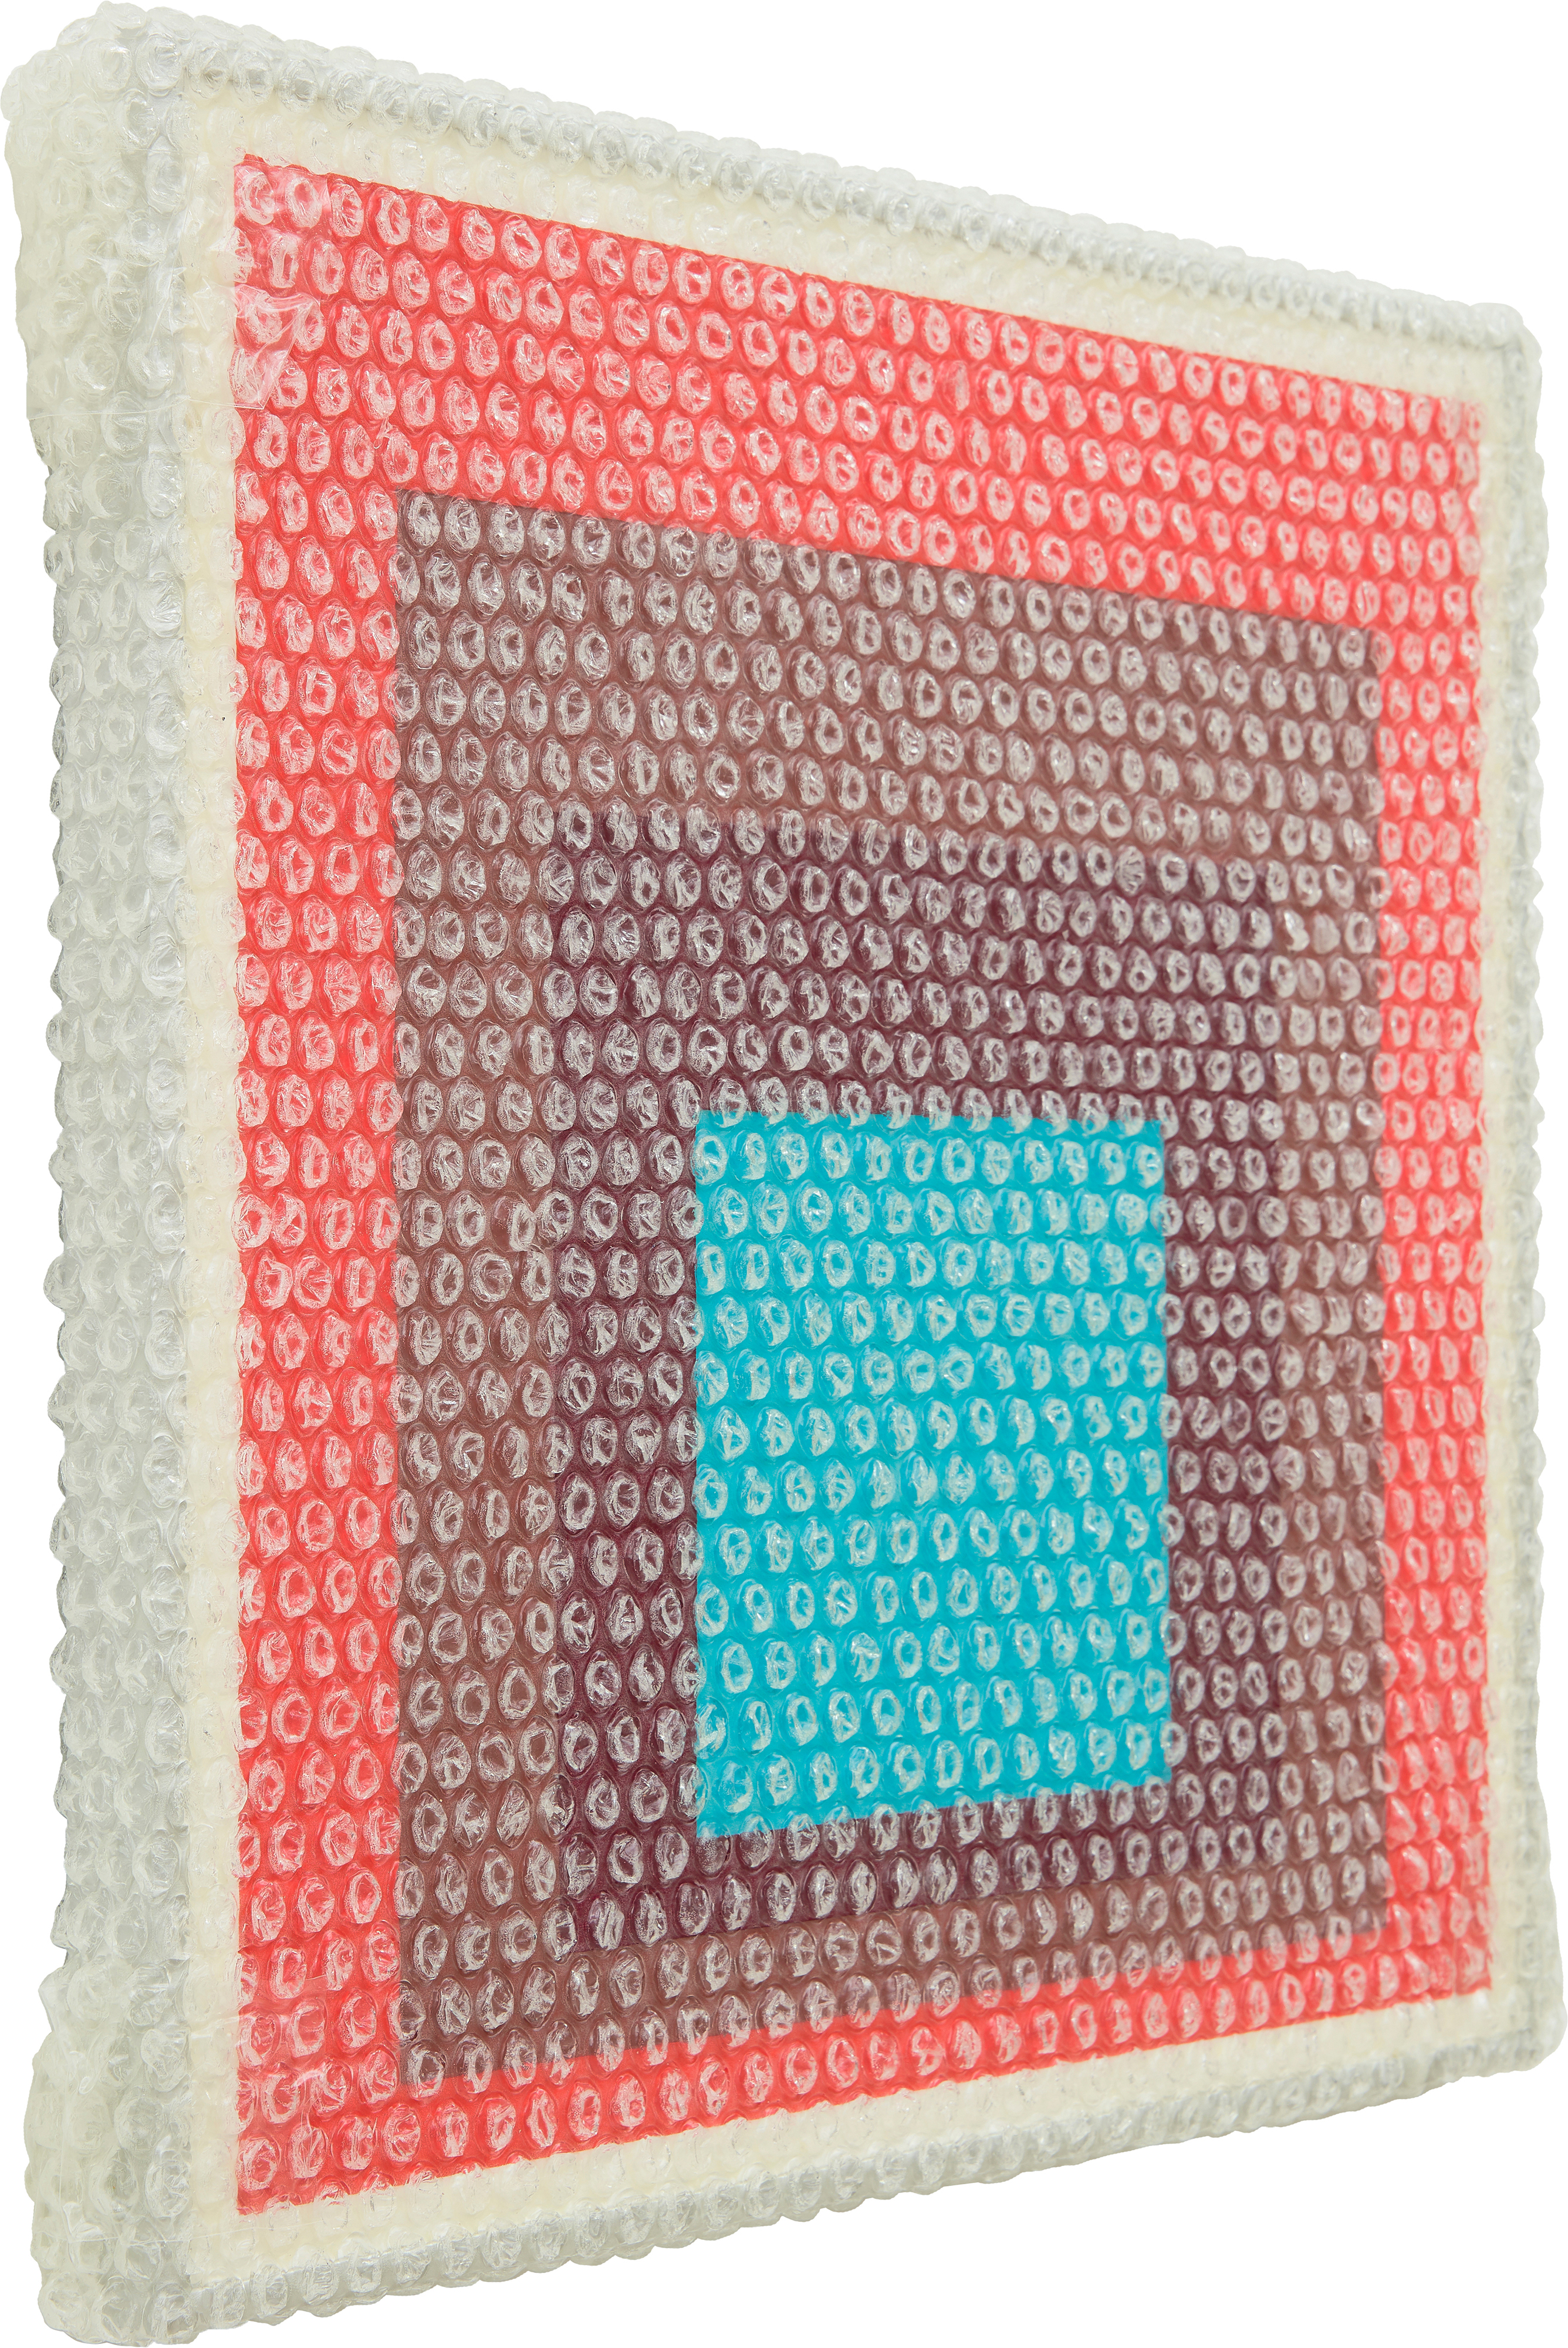 tammi campbell homage to the square with bubble wrap and packing tape 11